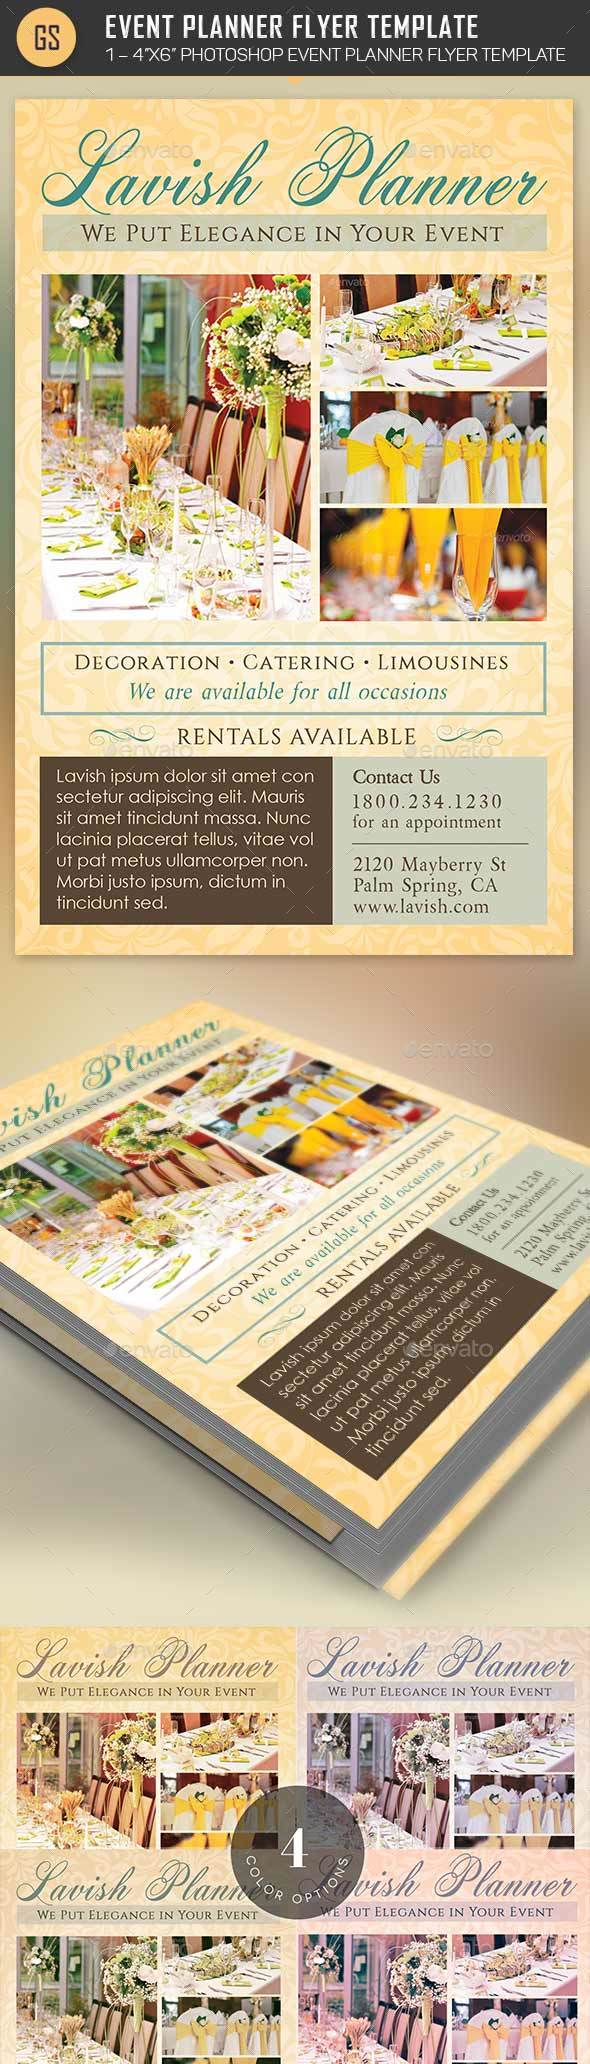 Event Planner Flyer Template - Commerce Flyers